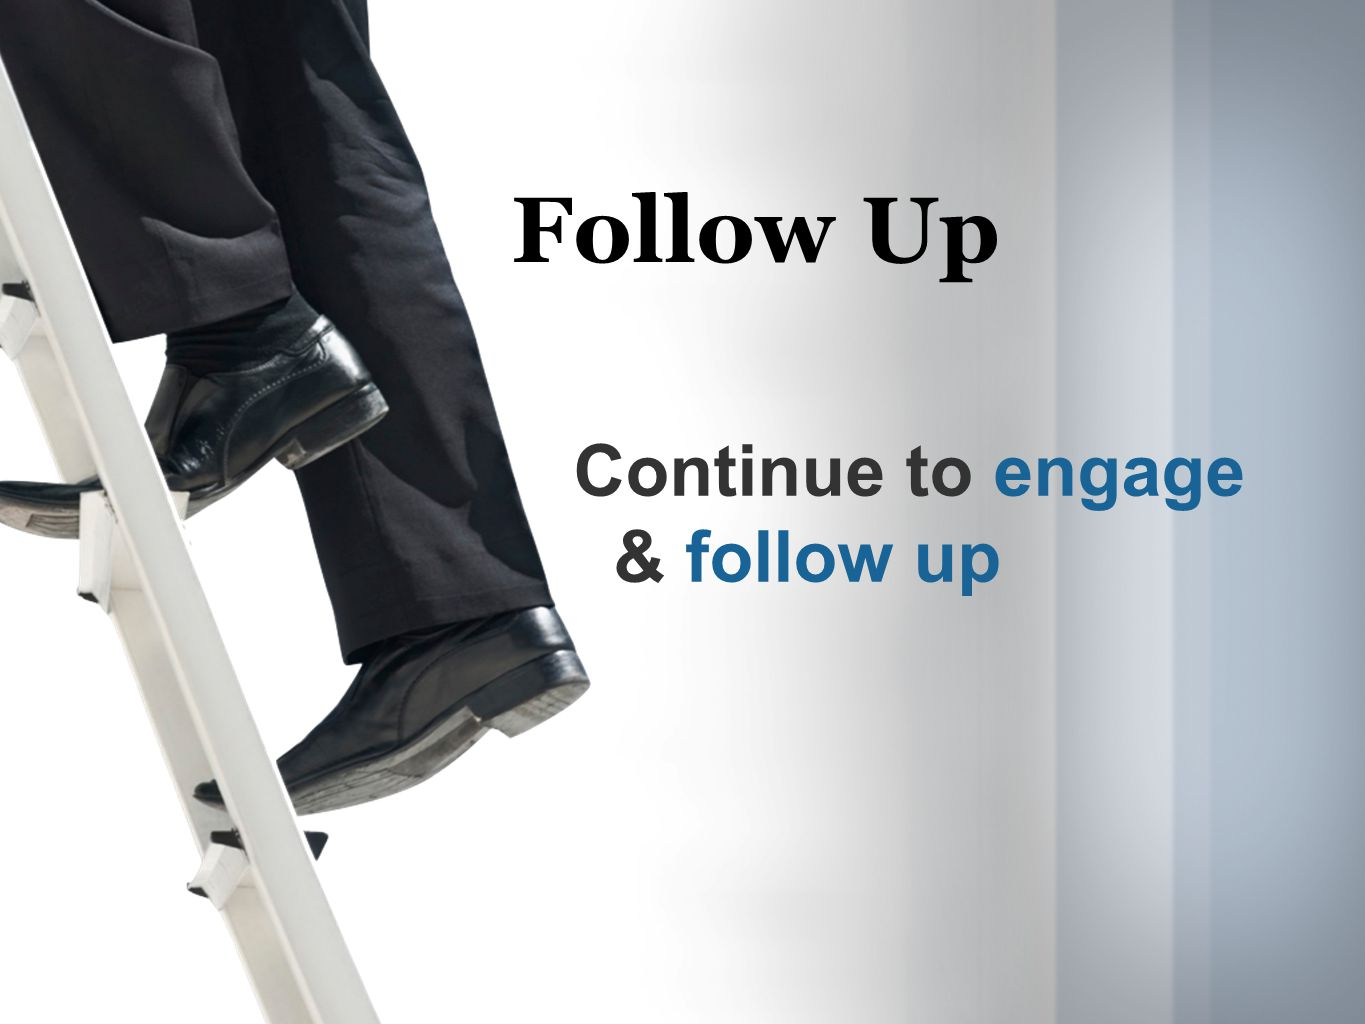 Follow Up Continue to engage & follow up